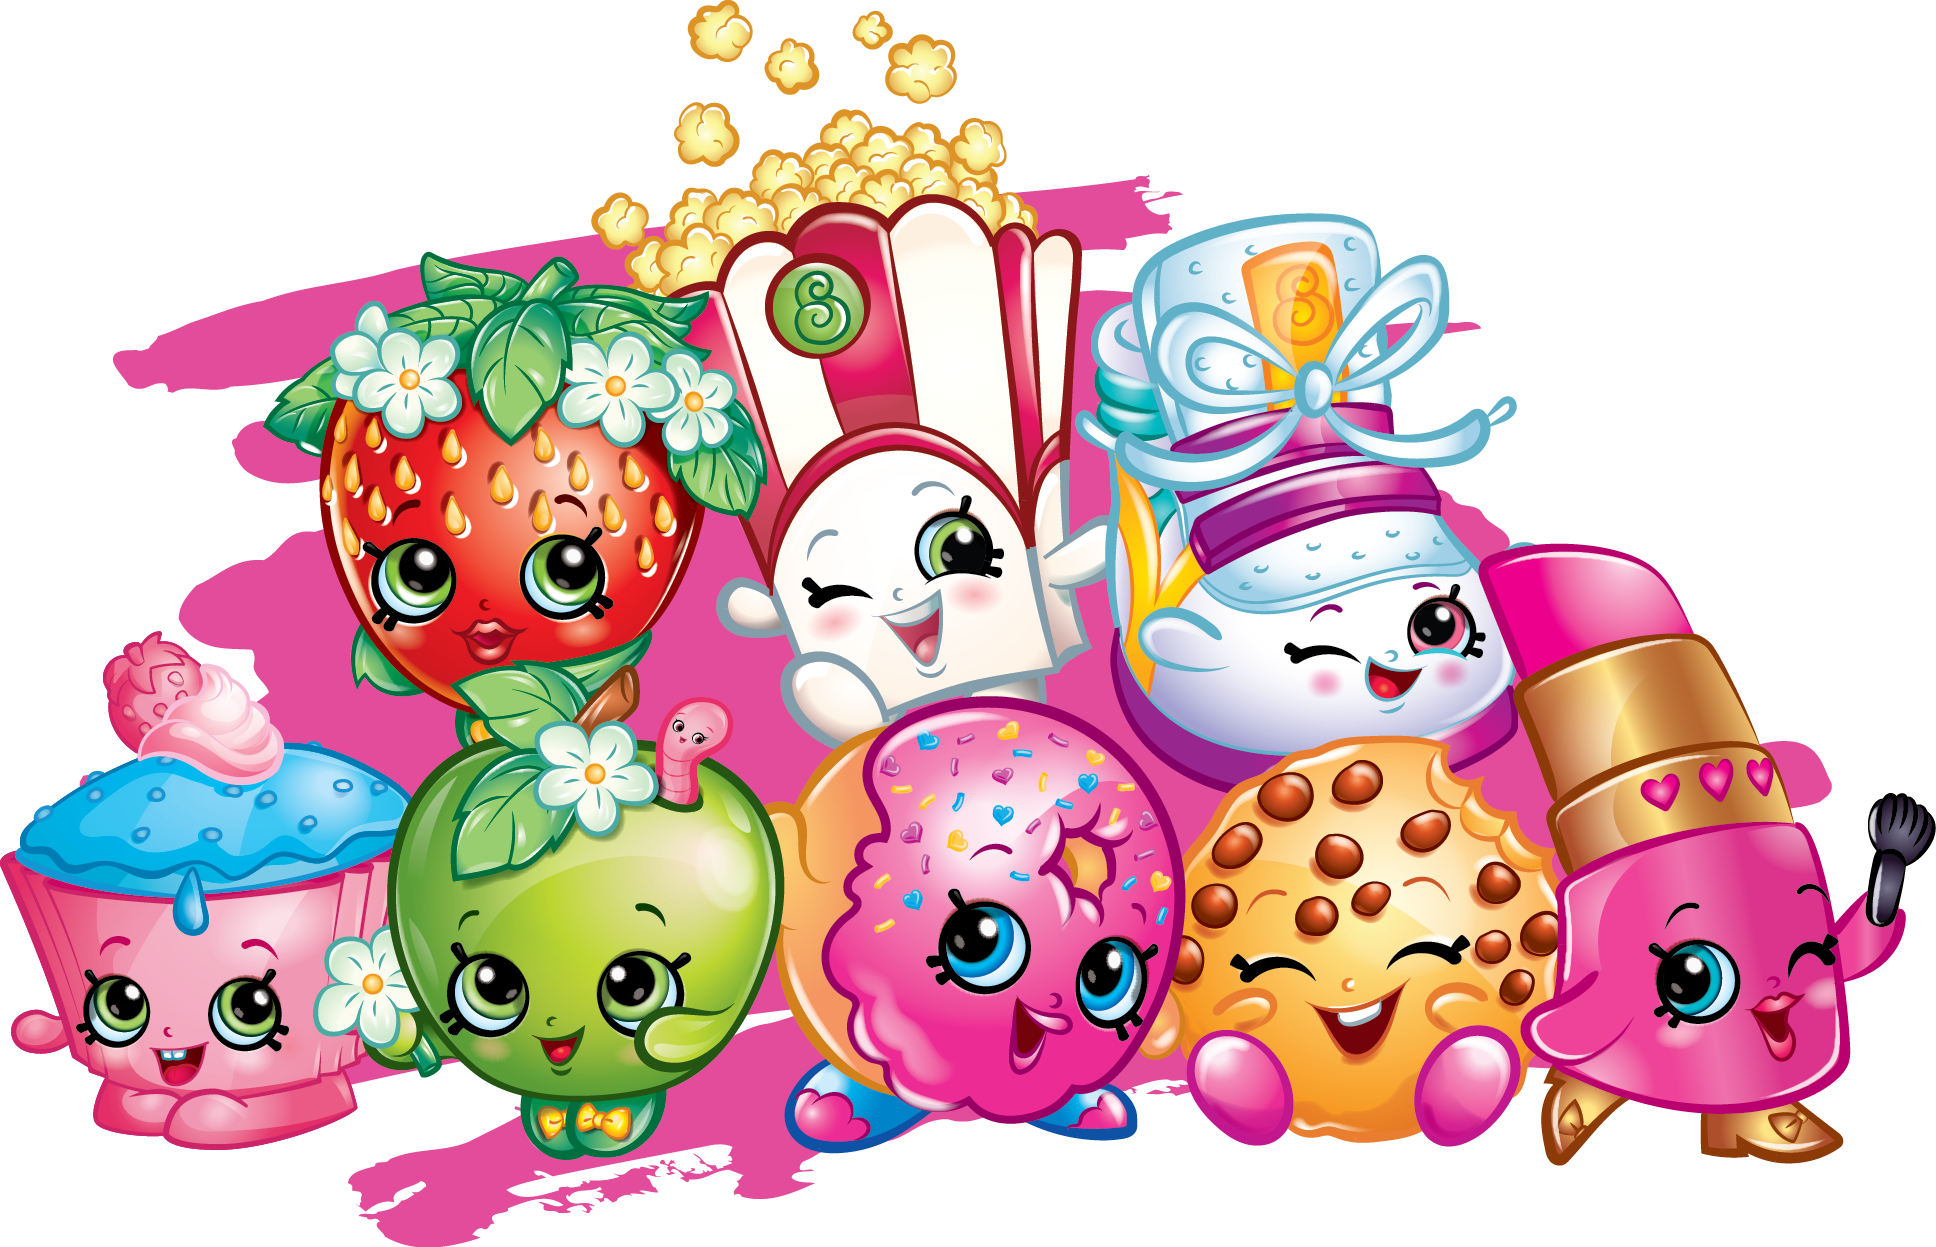 Pancake clipart shopkins, Pancake shopkins Transparent FREE.